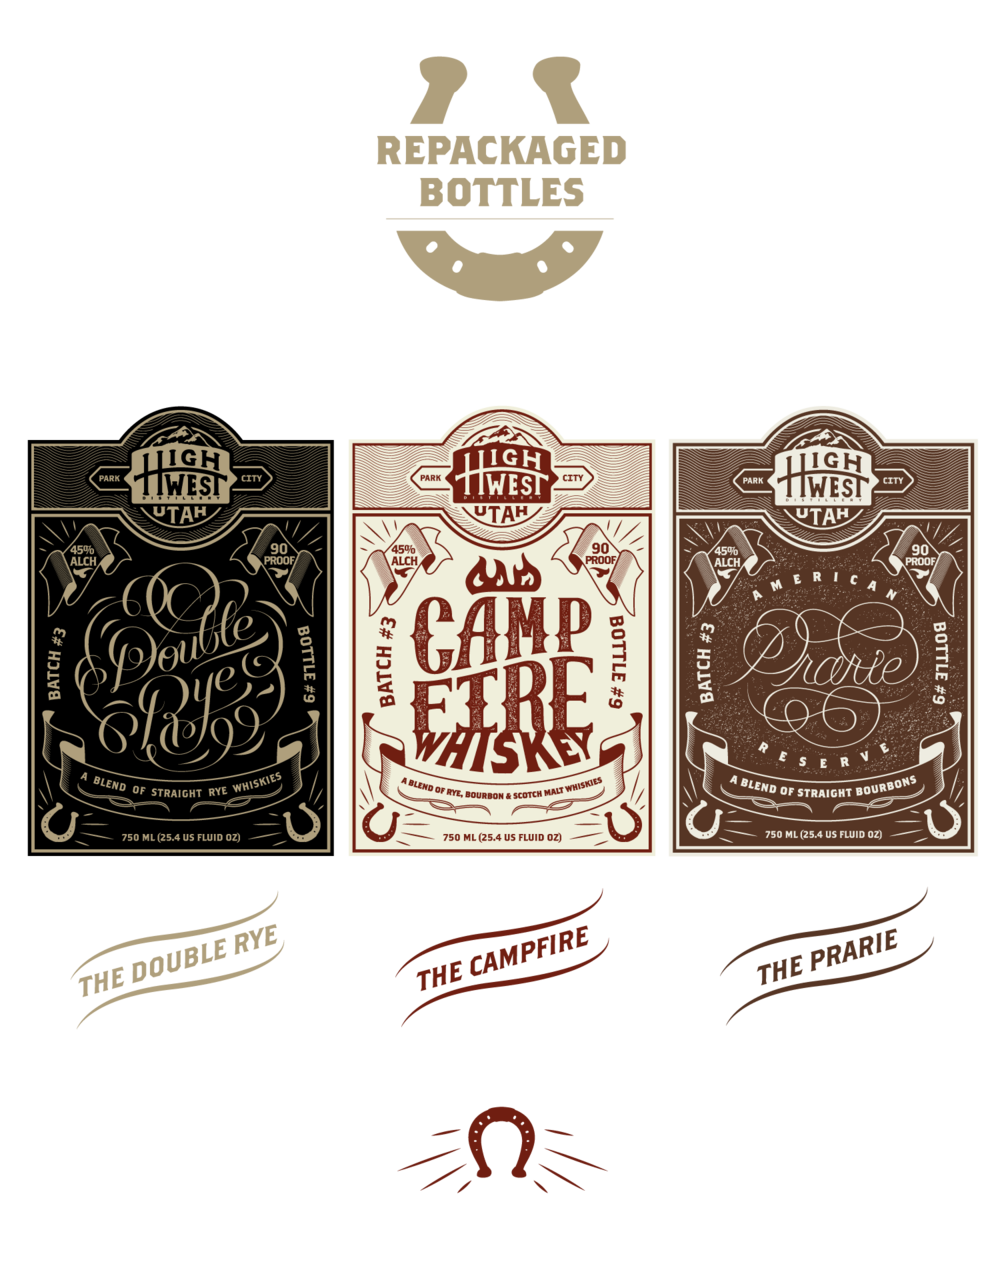 Hypothetical rebranding for a Utah distillery. Includes